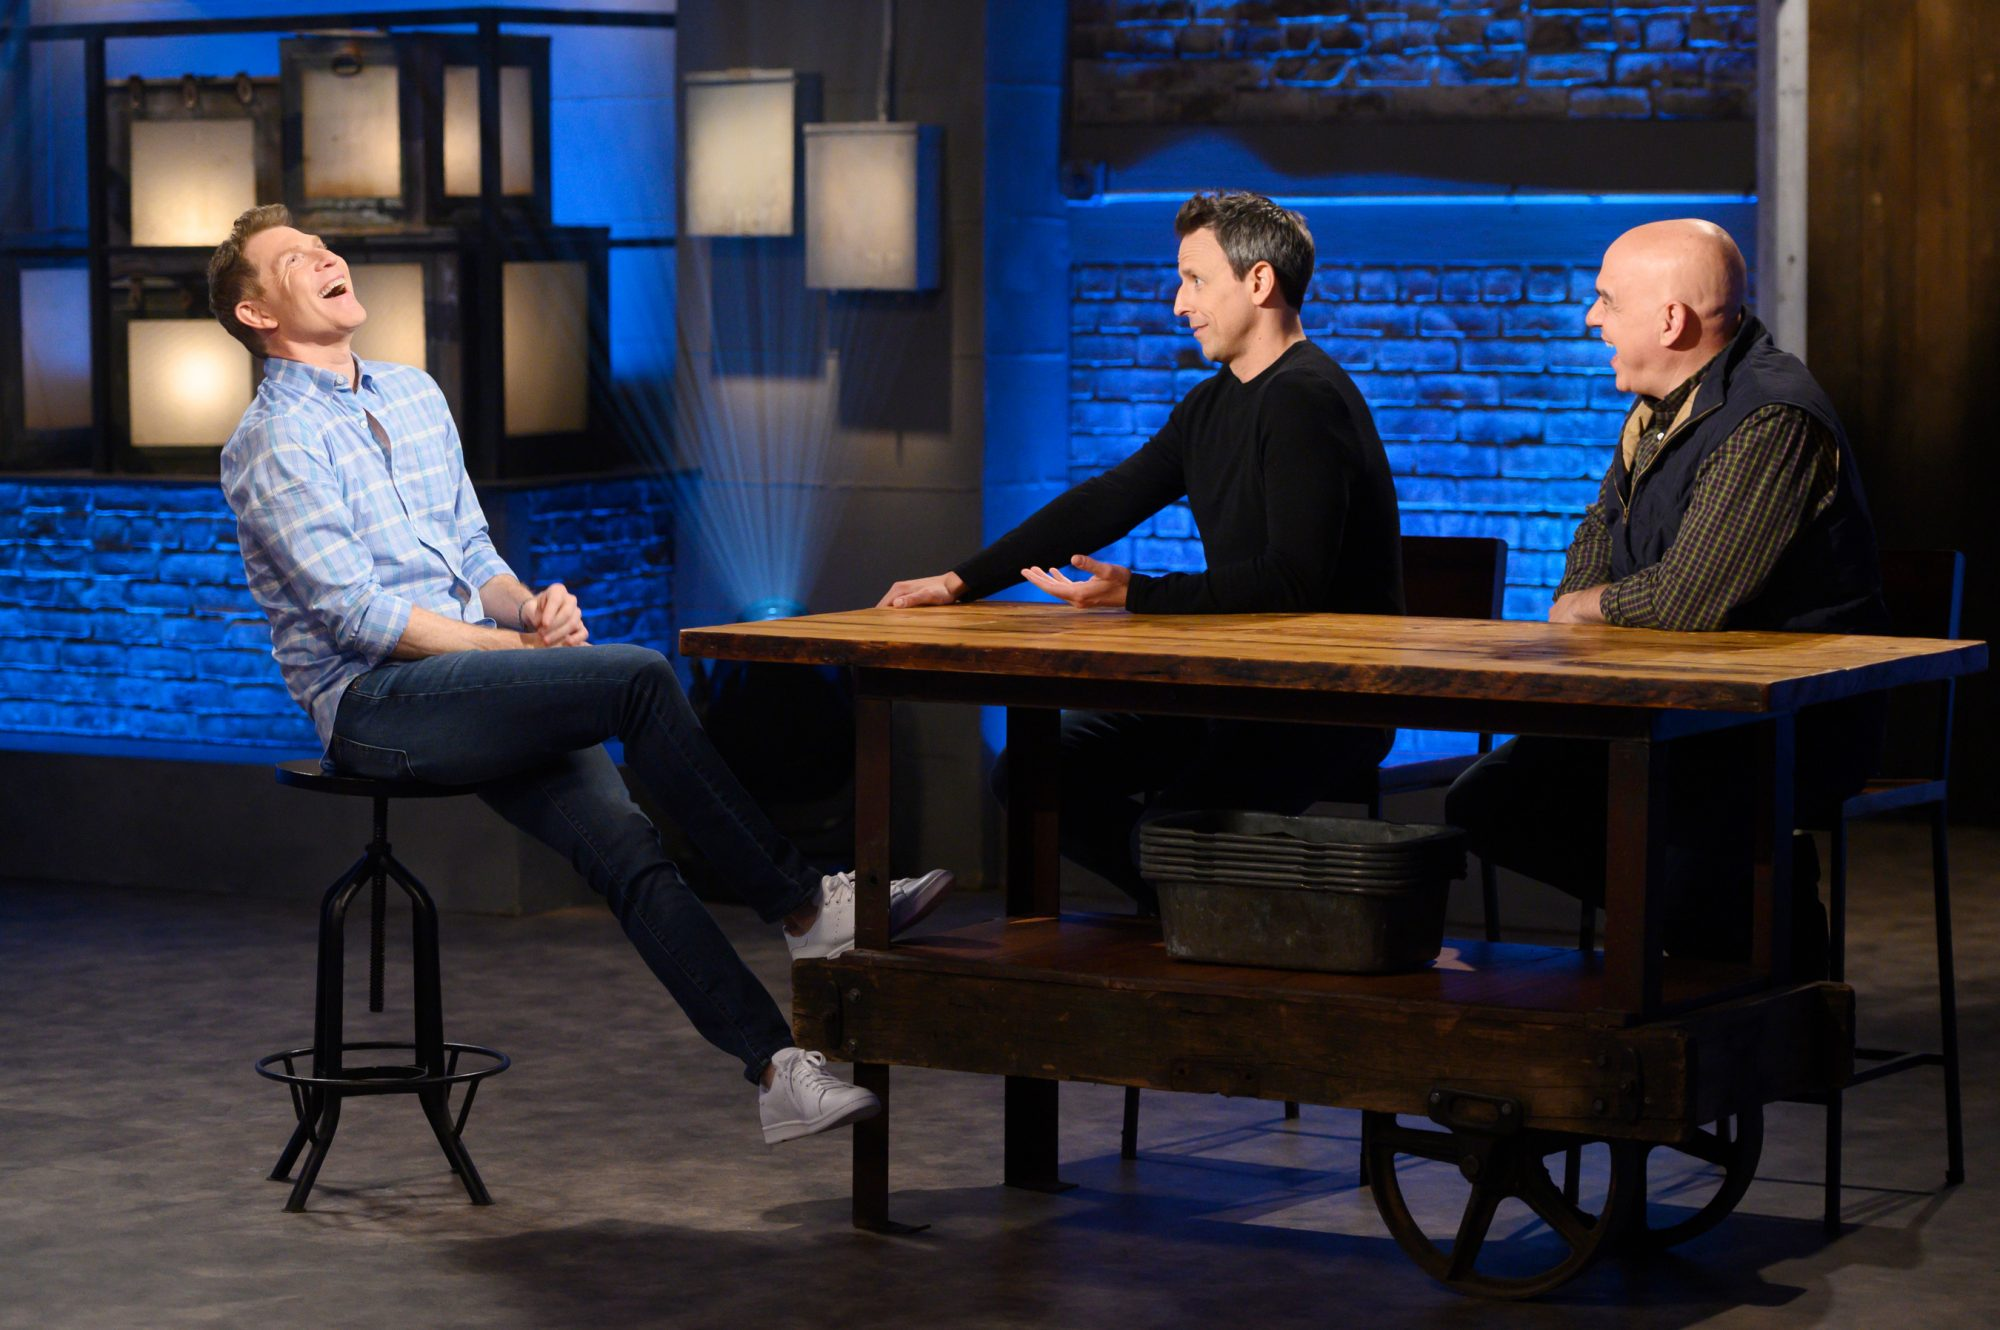 Host Bobby Flay with co-hosts Seth Meyers and Michael Symon